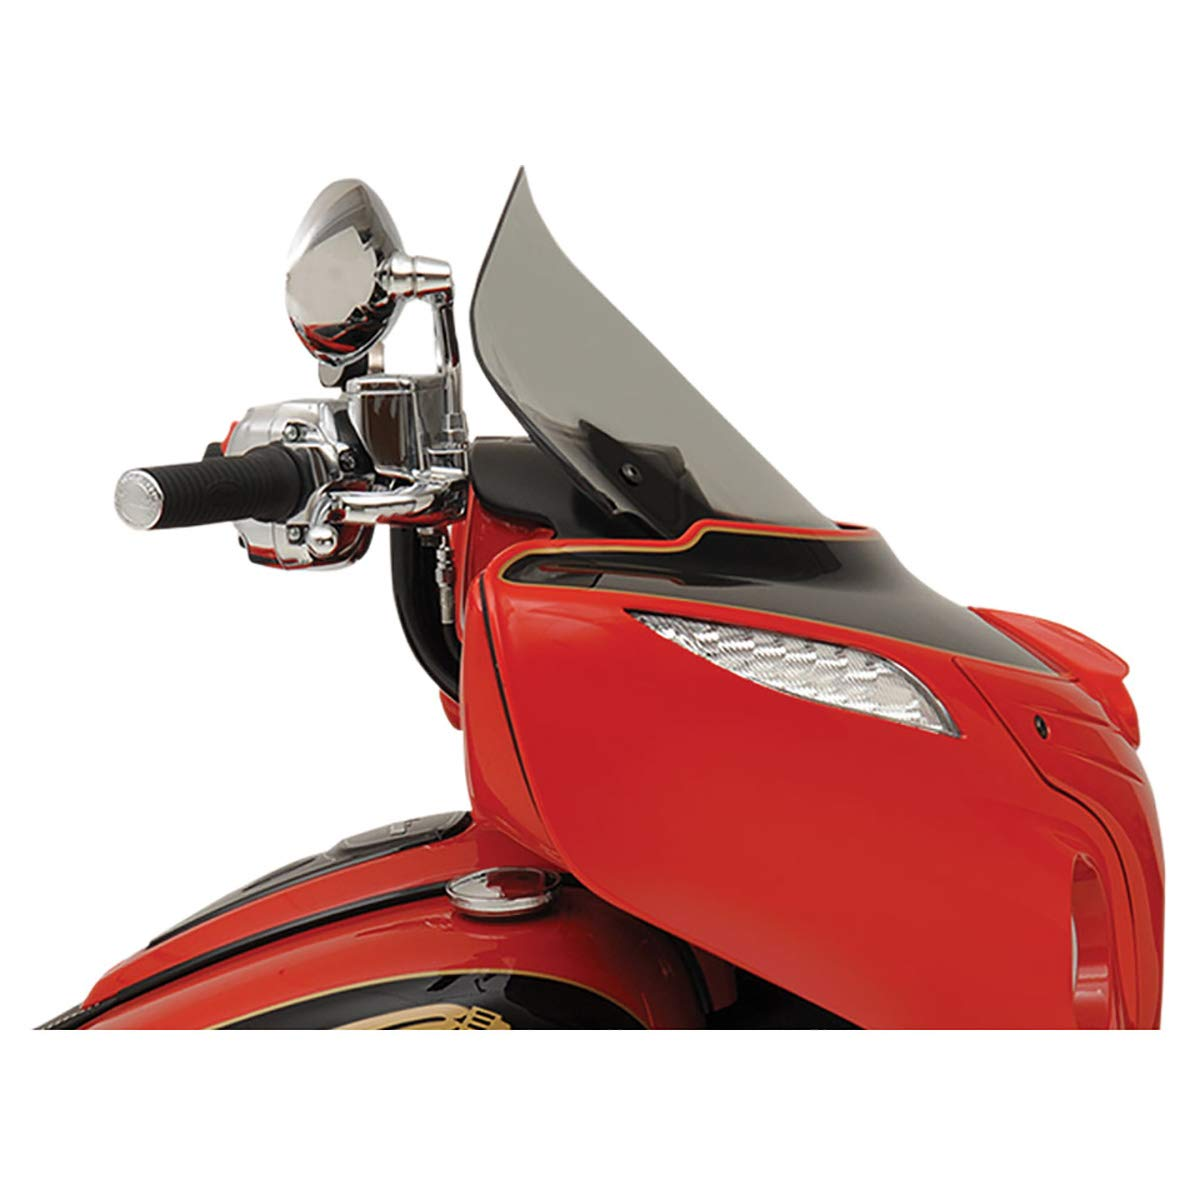 10 Tint KLOCK Werks Flare for Indian Chieftain//Roadmaster